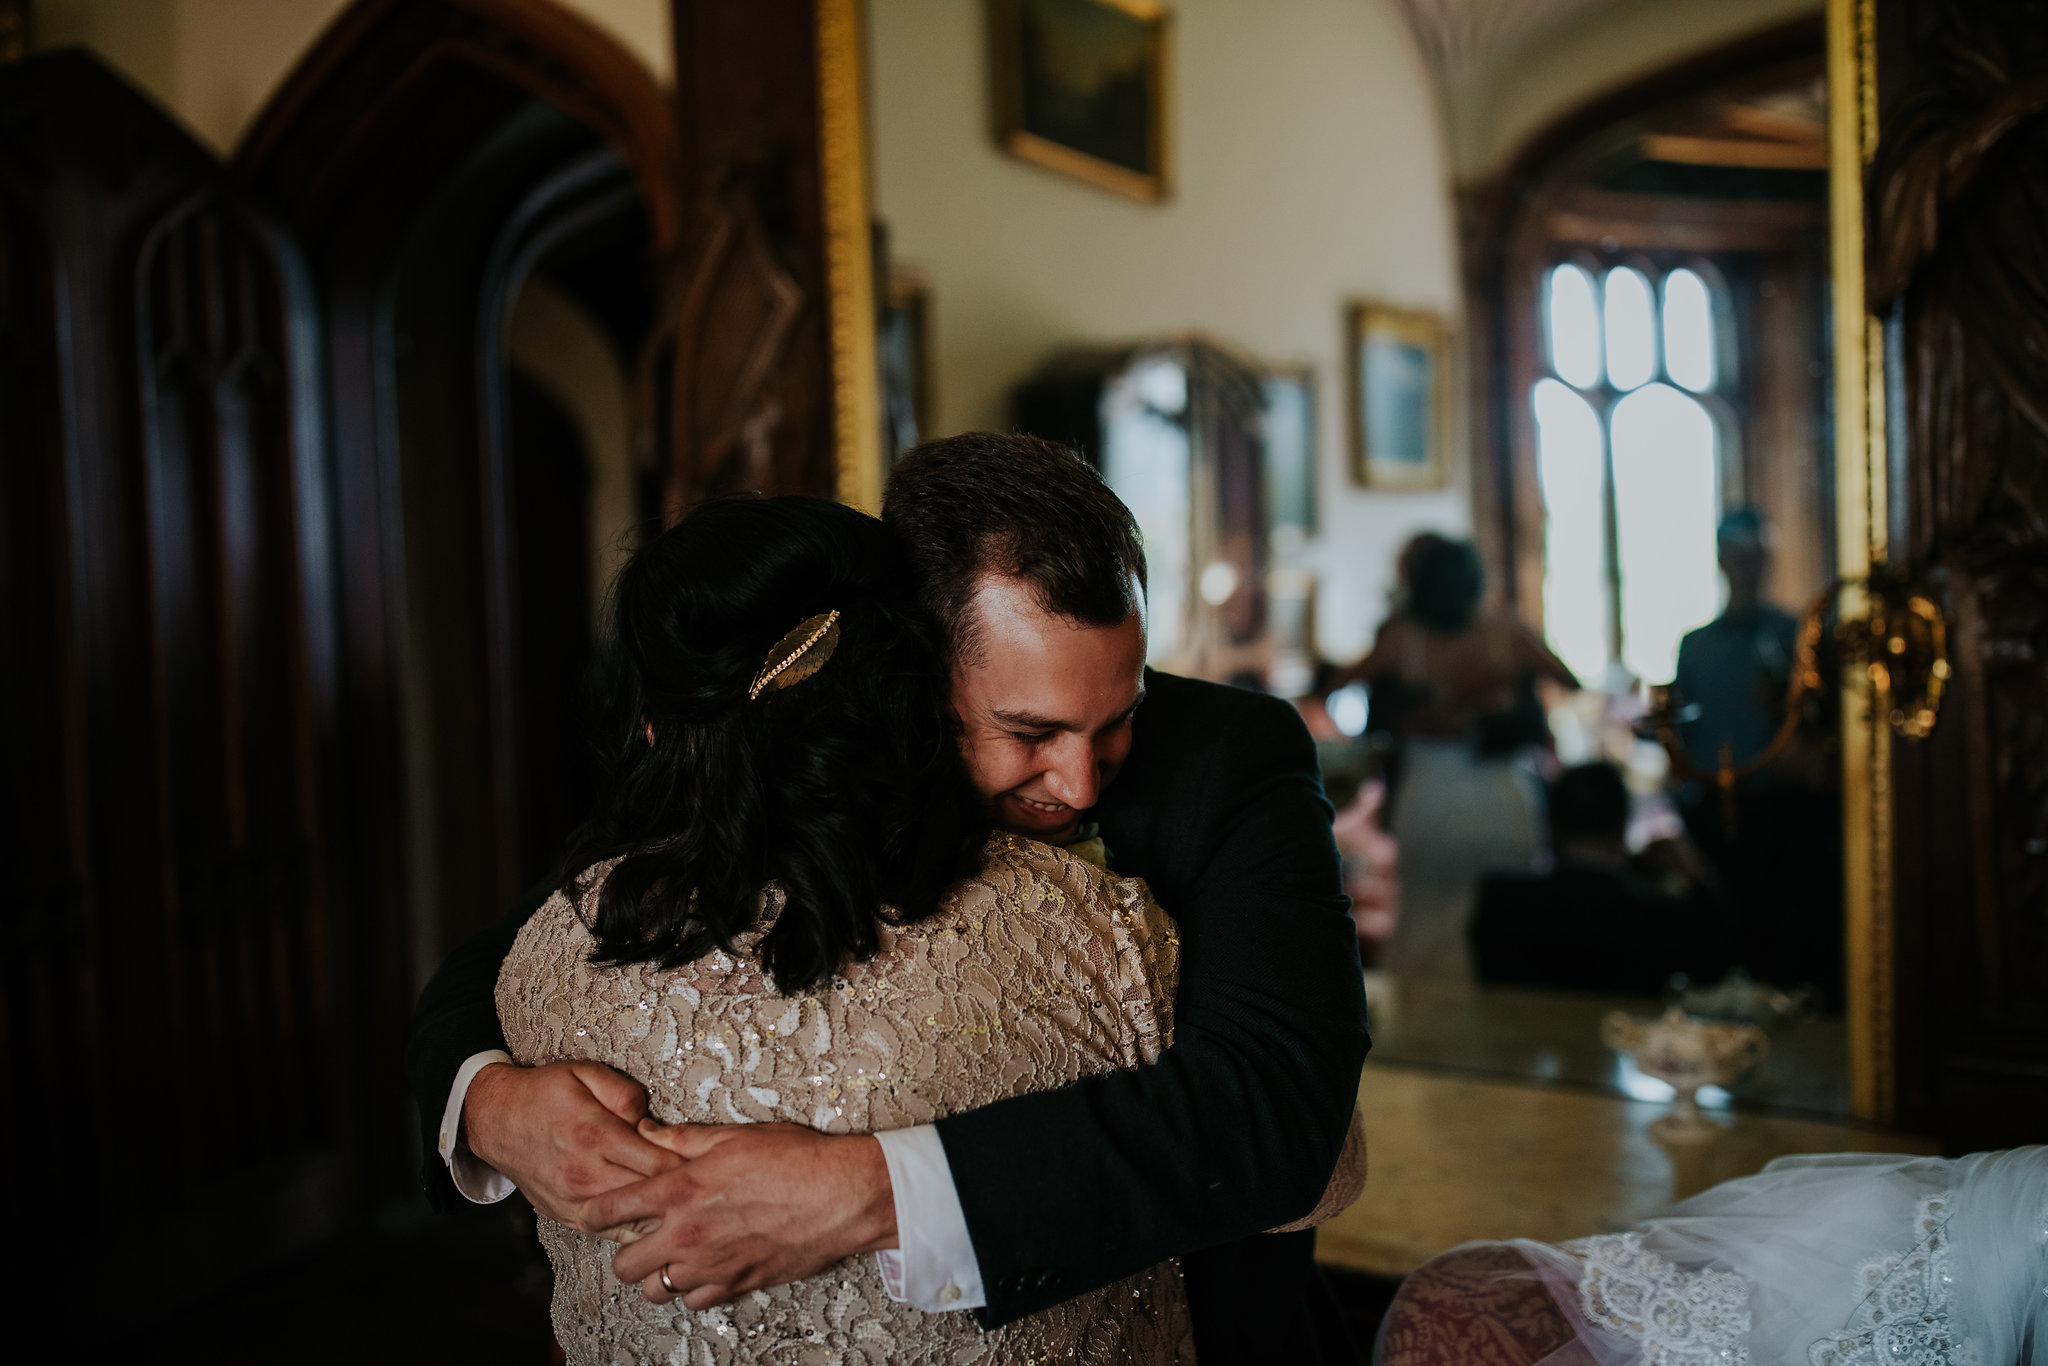 Duns_Castle_wedding_photographer_ross_alexander_photography (89).jpg